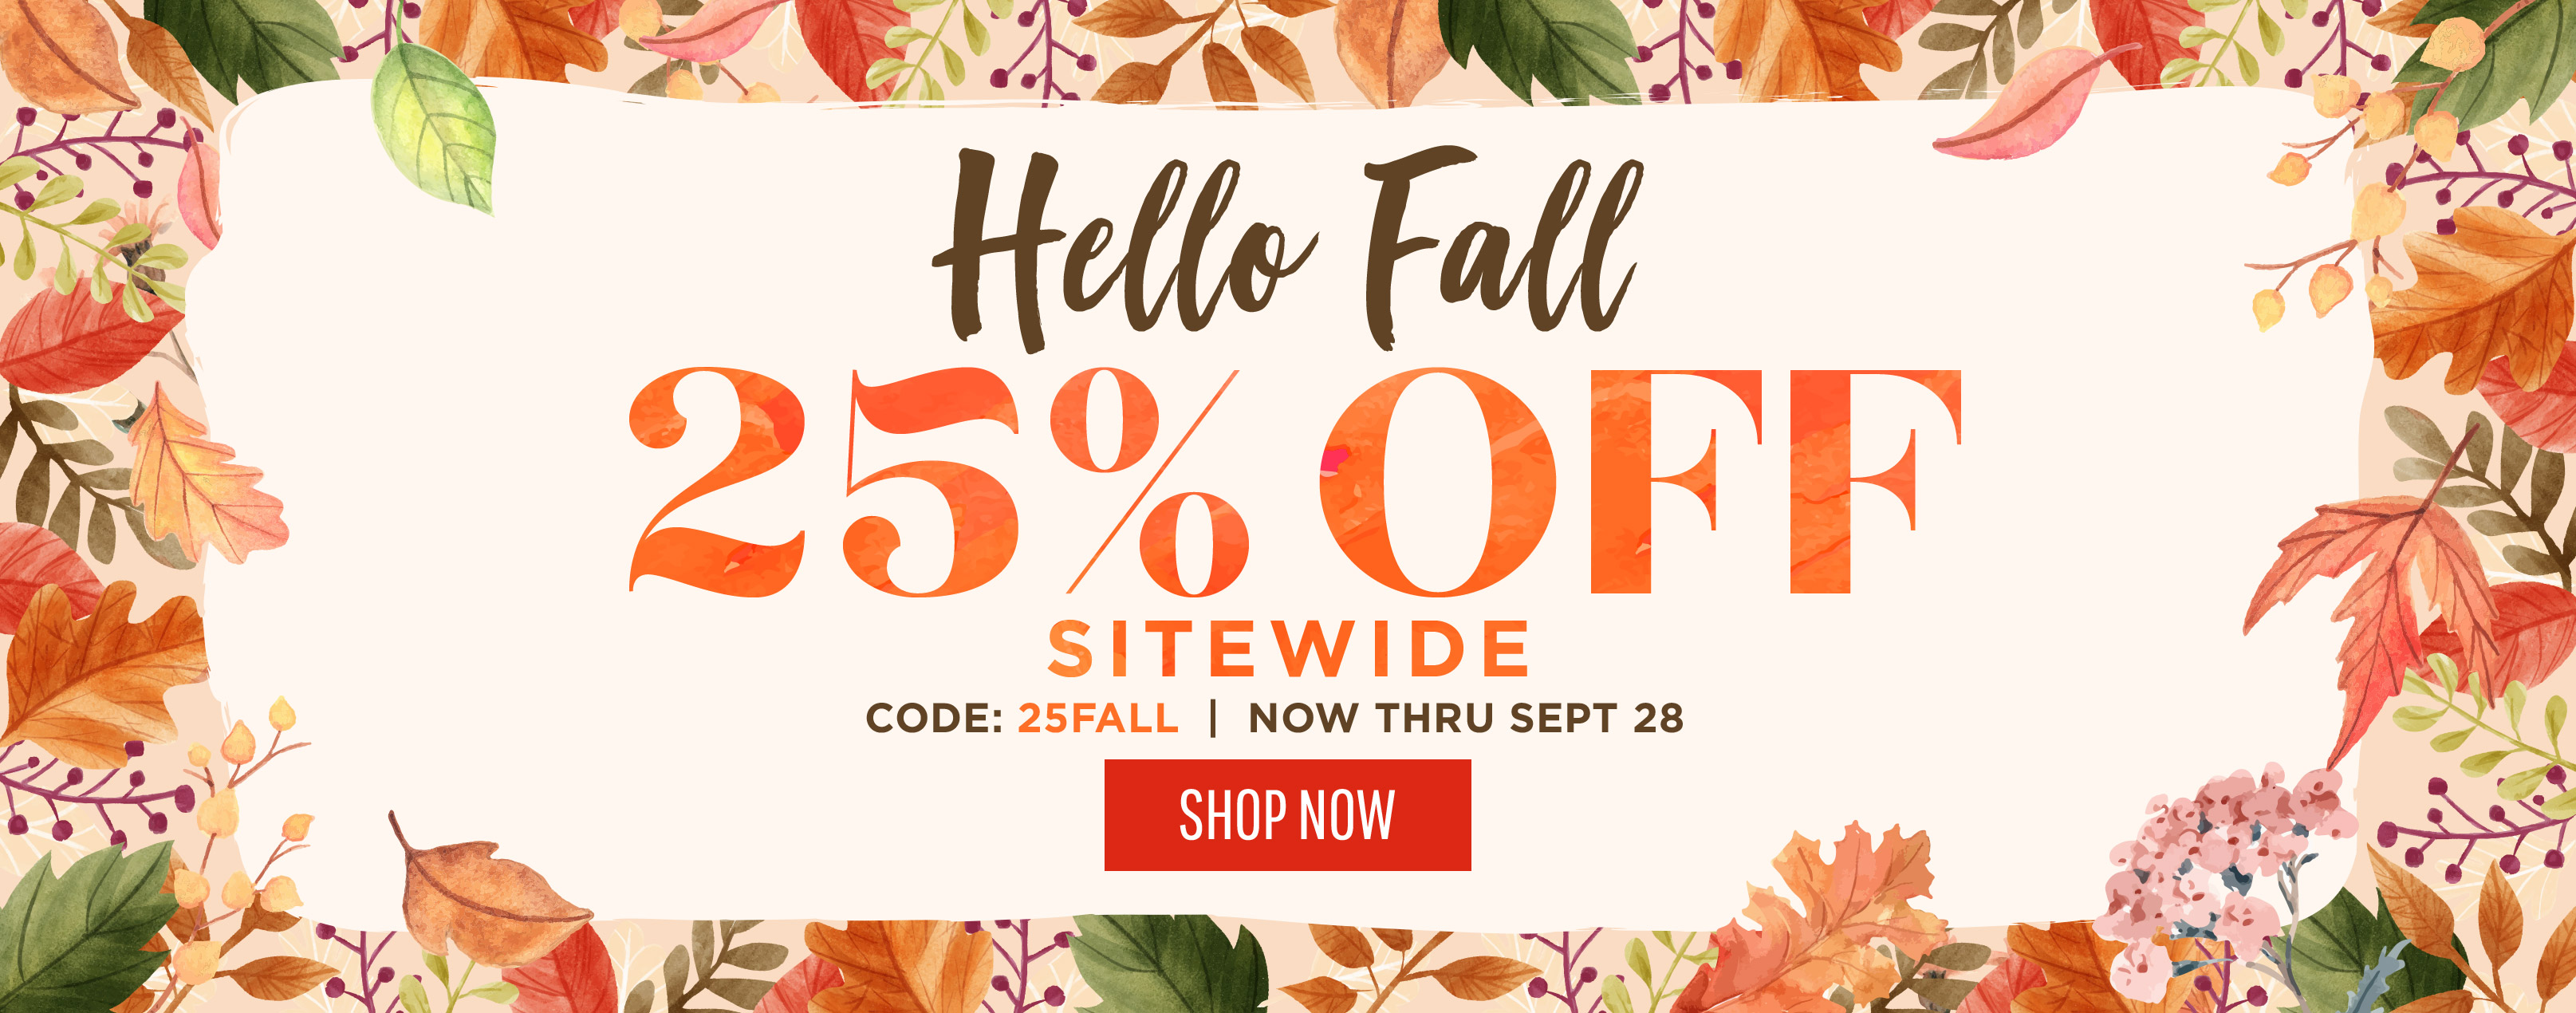 Hello Fall 25% off sitewide code: 25FALL now thru Sept 28.